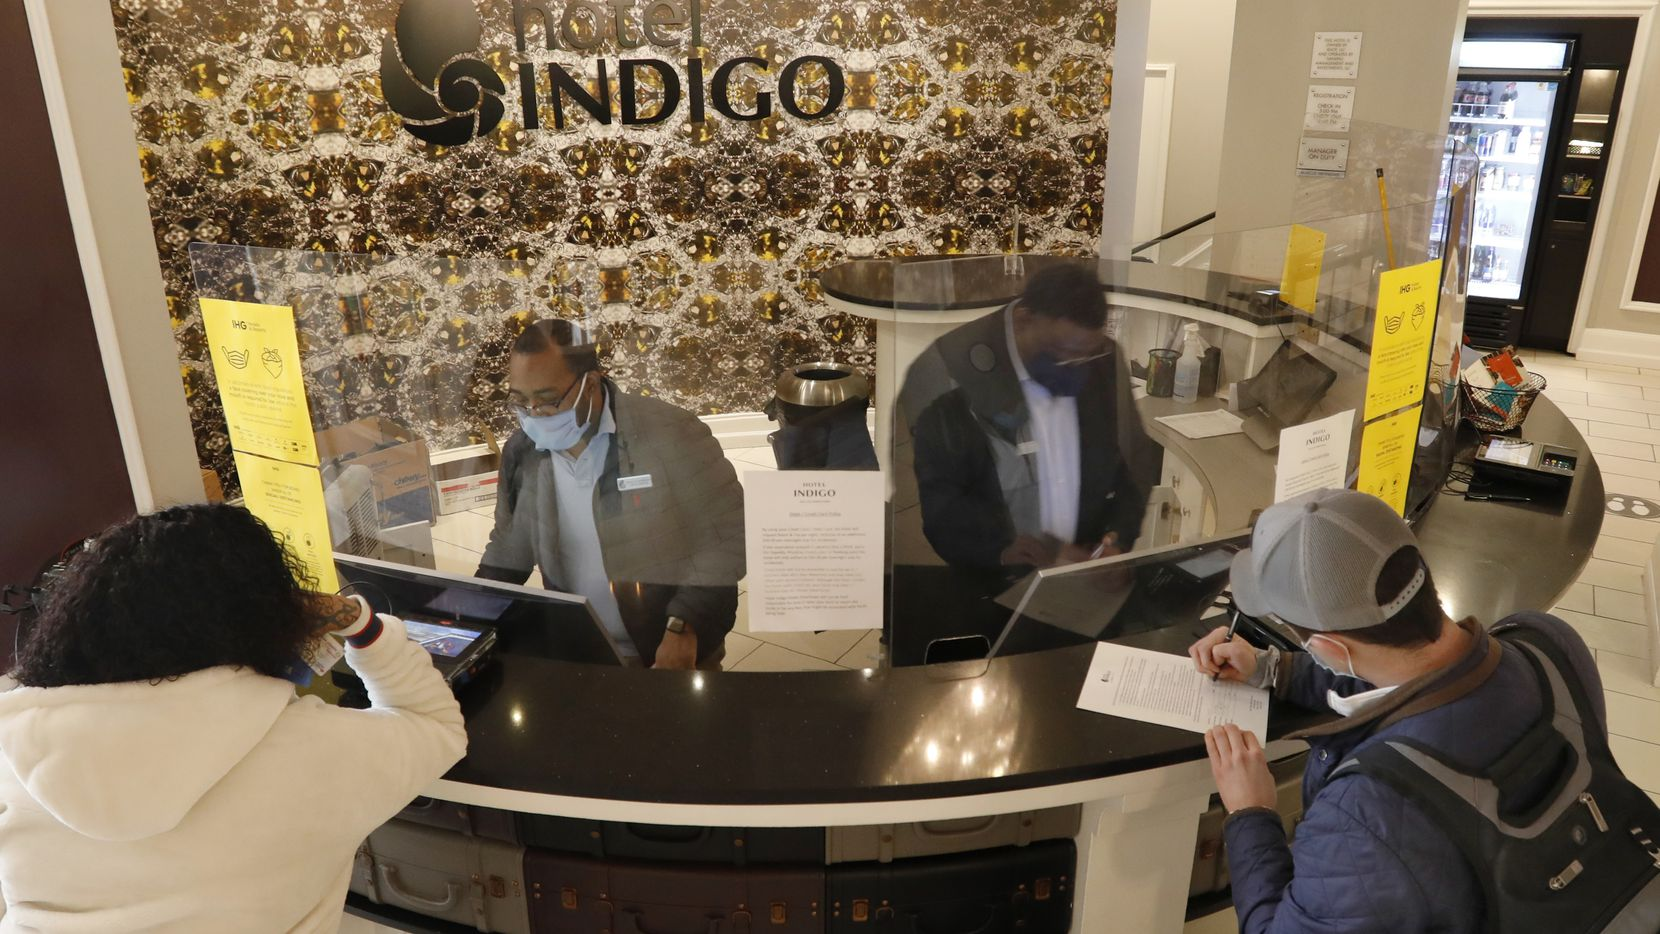 General manager Marcus Hennigan (back left) and Brian Smith (back right) checked in guests at the Hotel Indigo on Main Street in downtown Dallas in February.